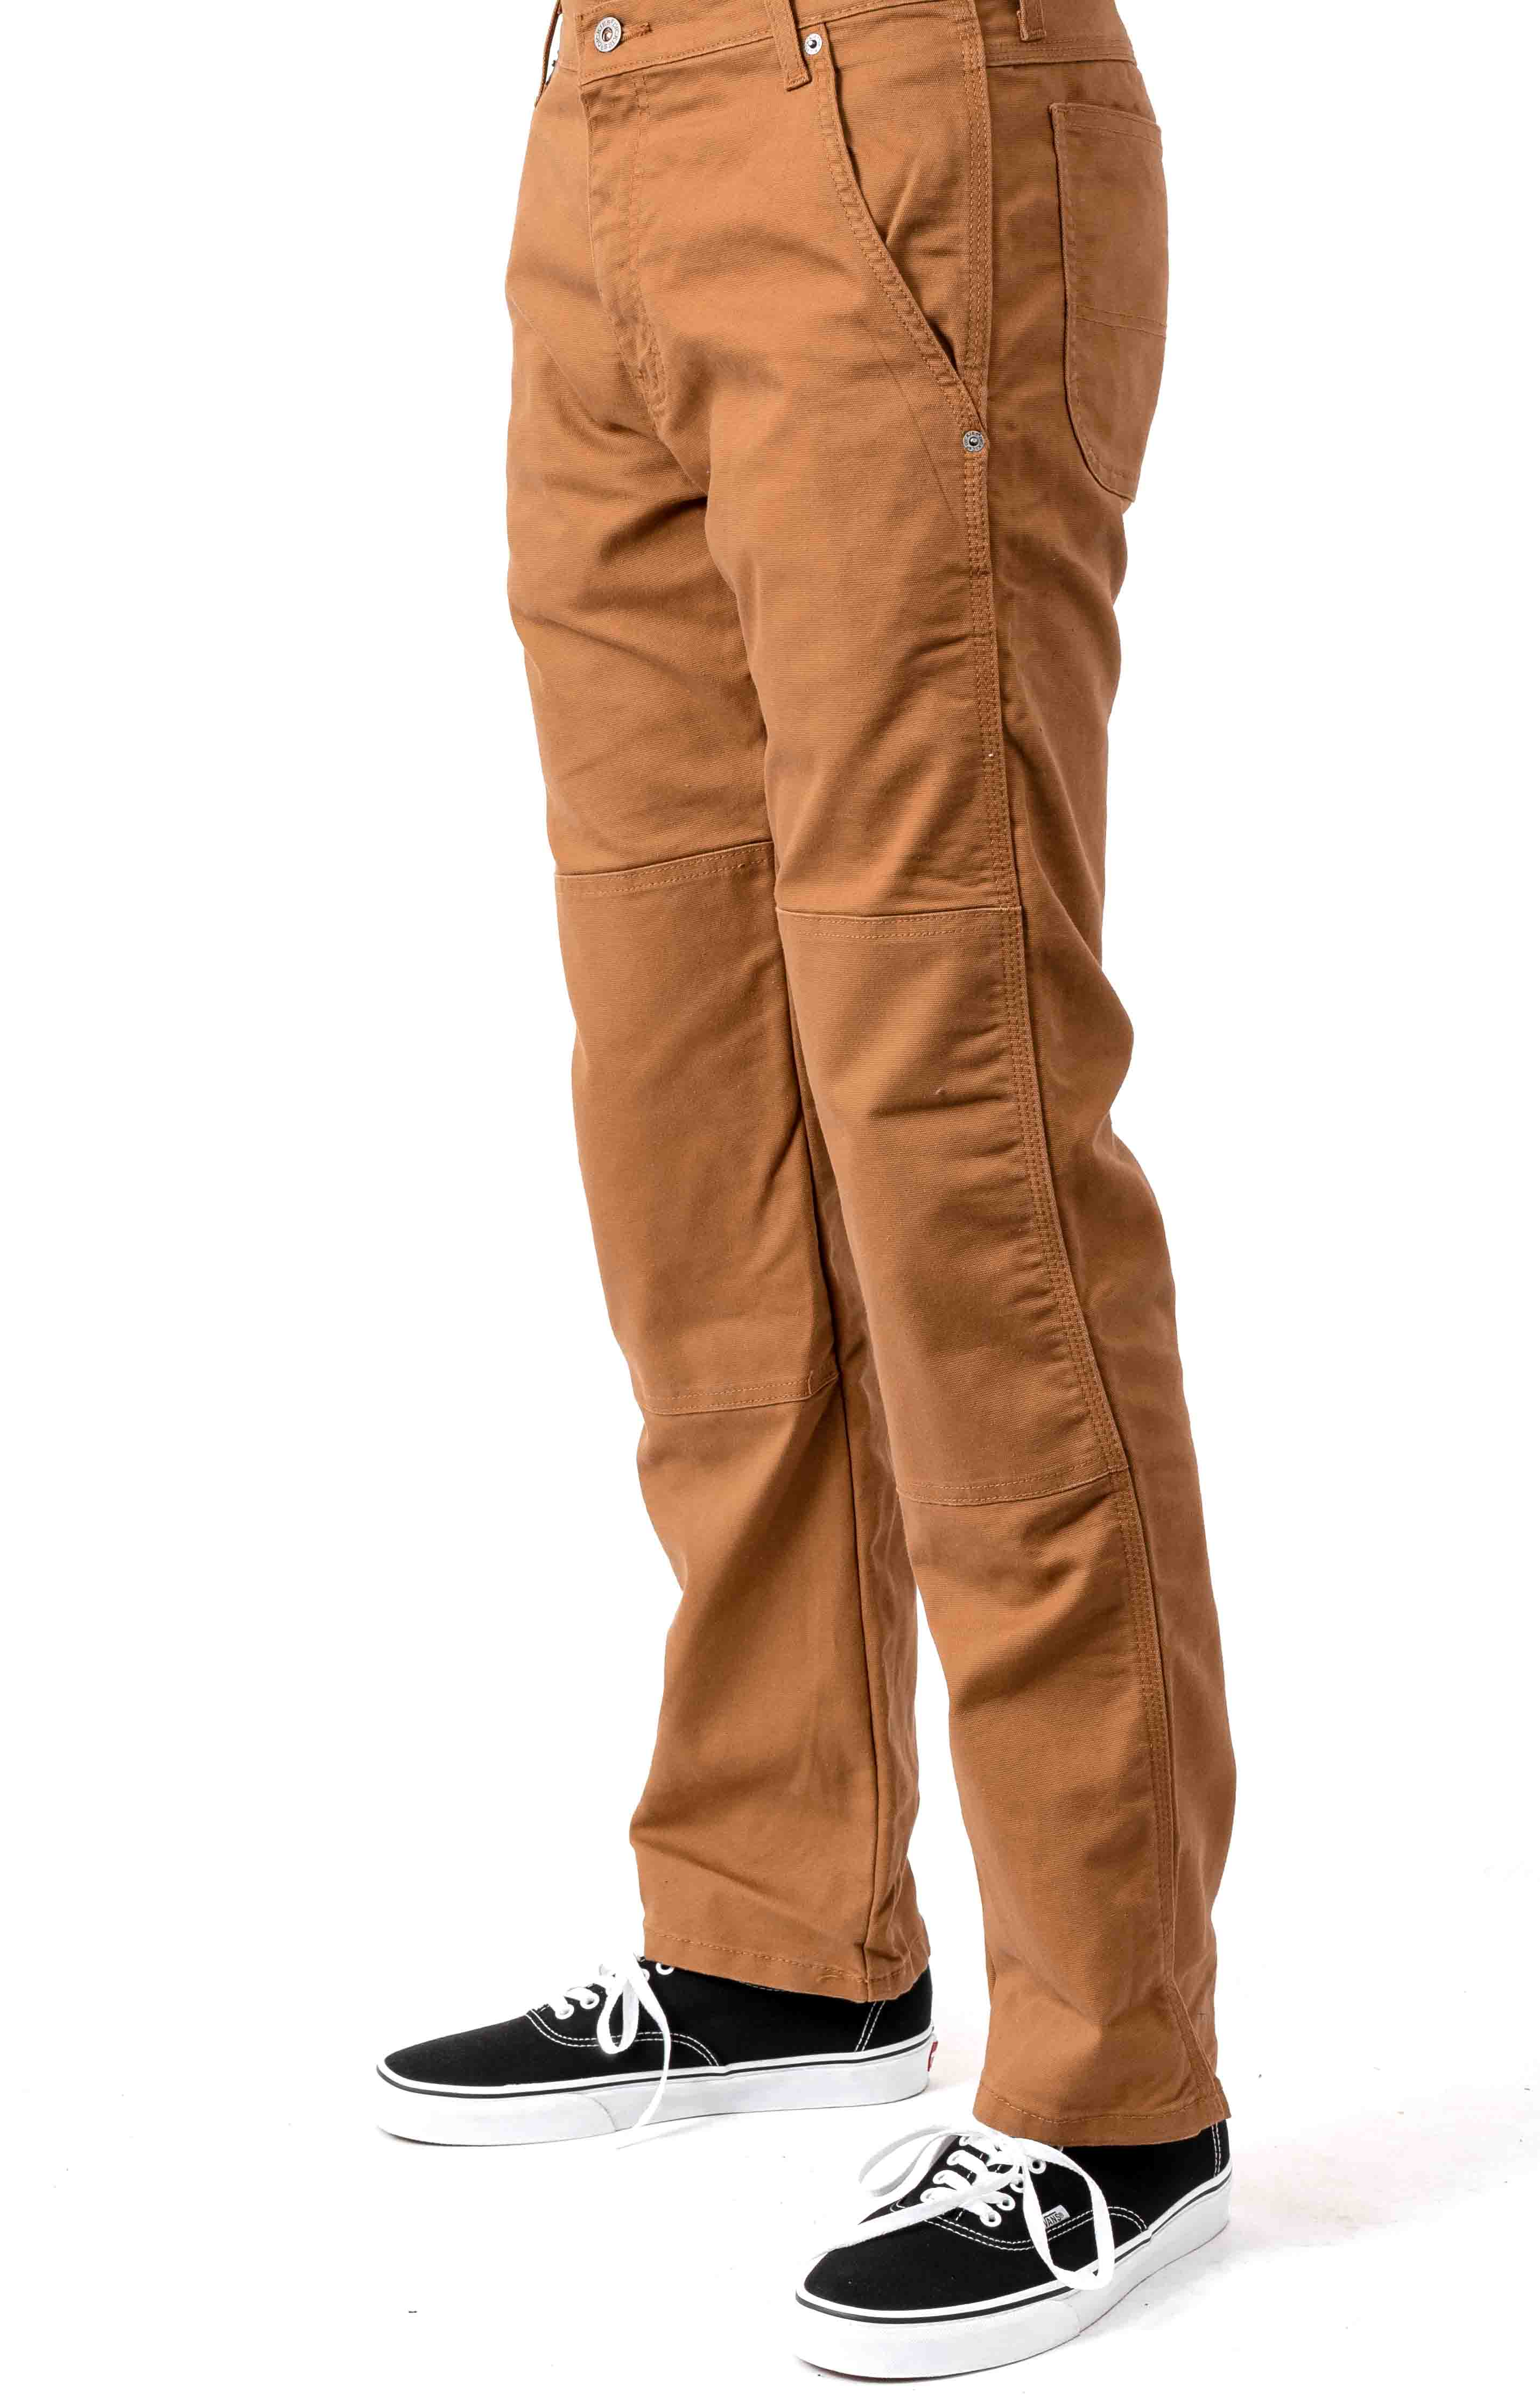 (DP903SBD) FLEX Regular Fit Tough Max Duck Double Knee Pant - Stonewashed Brown Duck